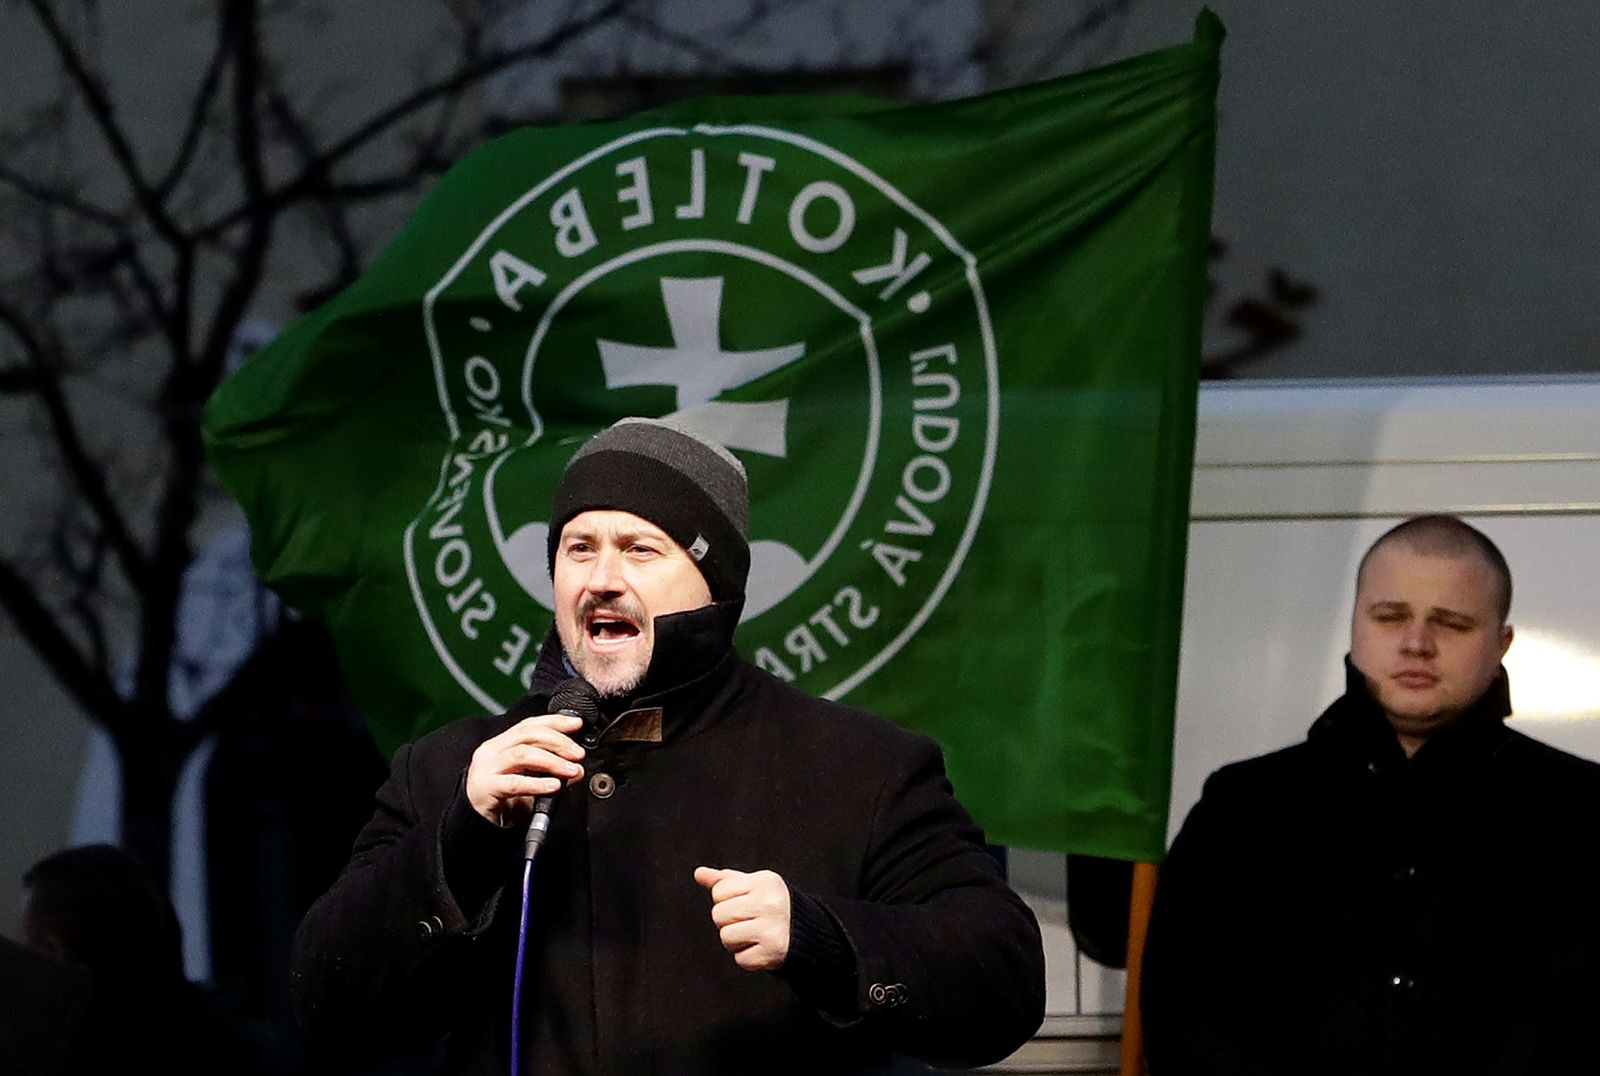 Leader of People's Party Our Slovakia Marian Kotleba speaks during an election campaign rally in Topolcany